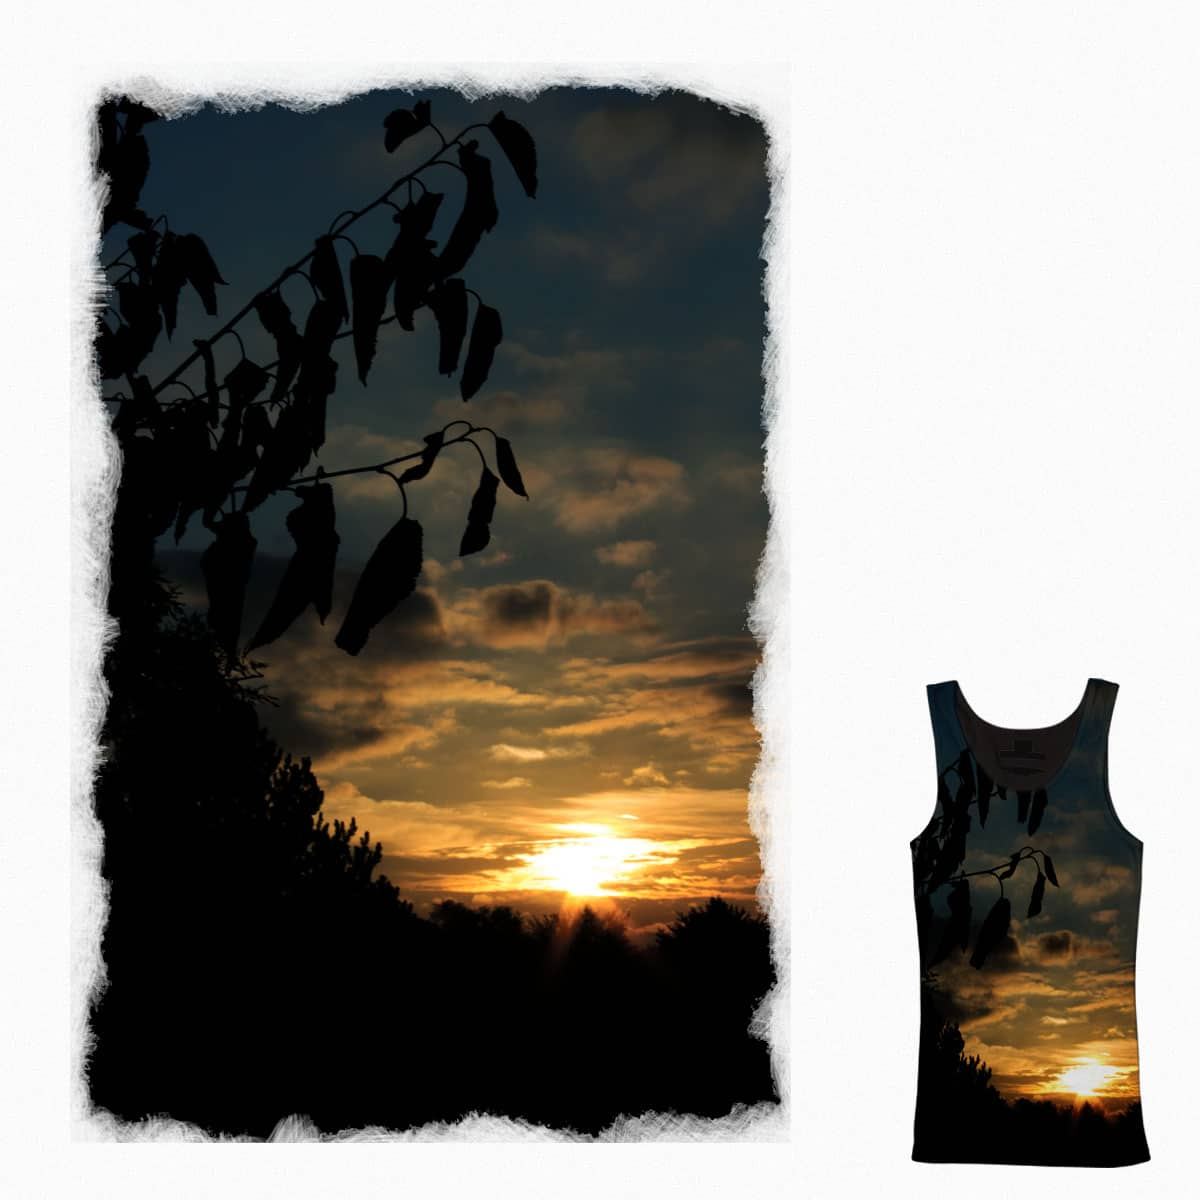 Sunset by raigen on Threadless